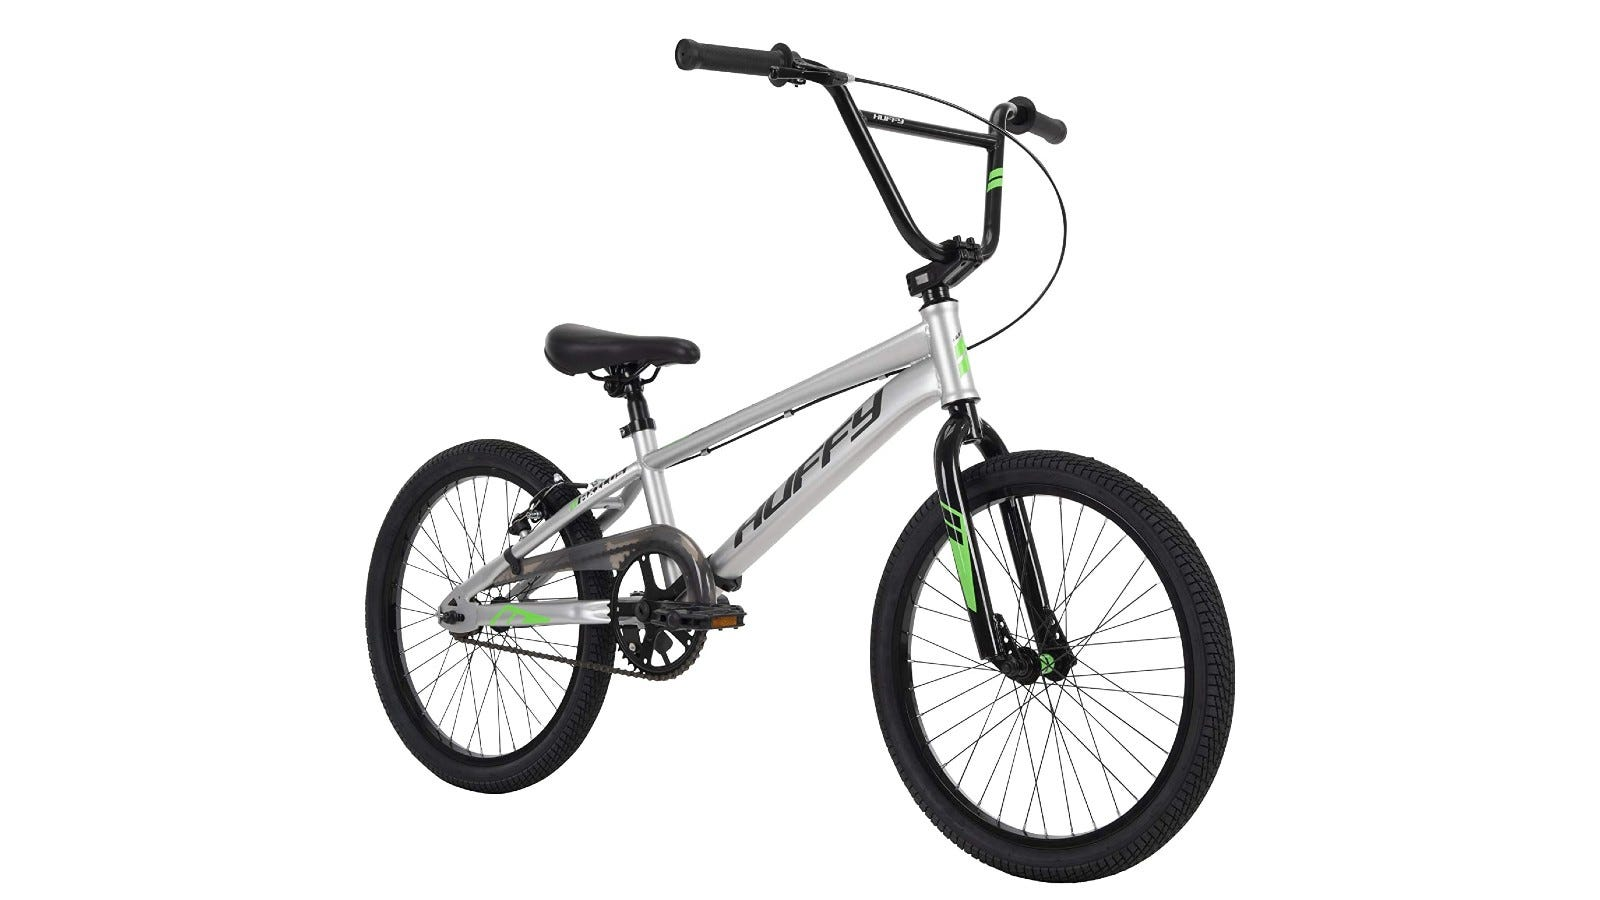 A silver Huffy BMX bike with green and black accents